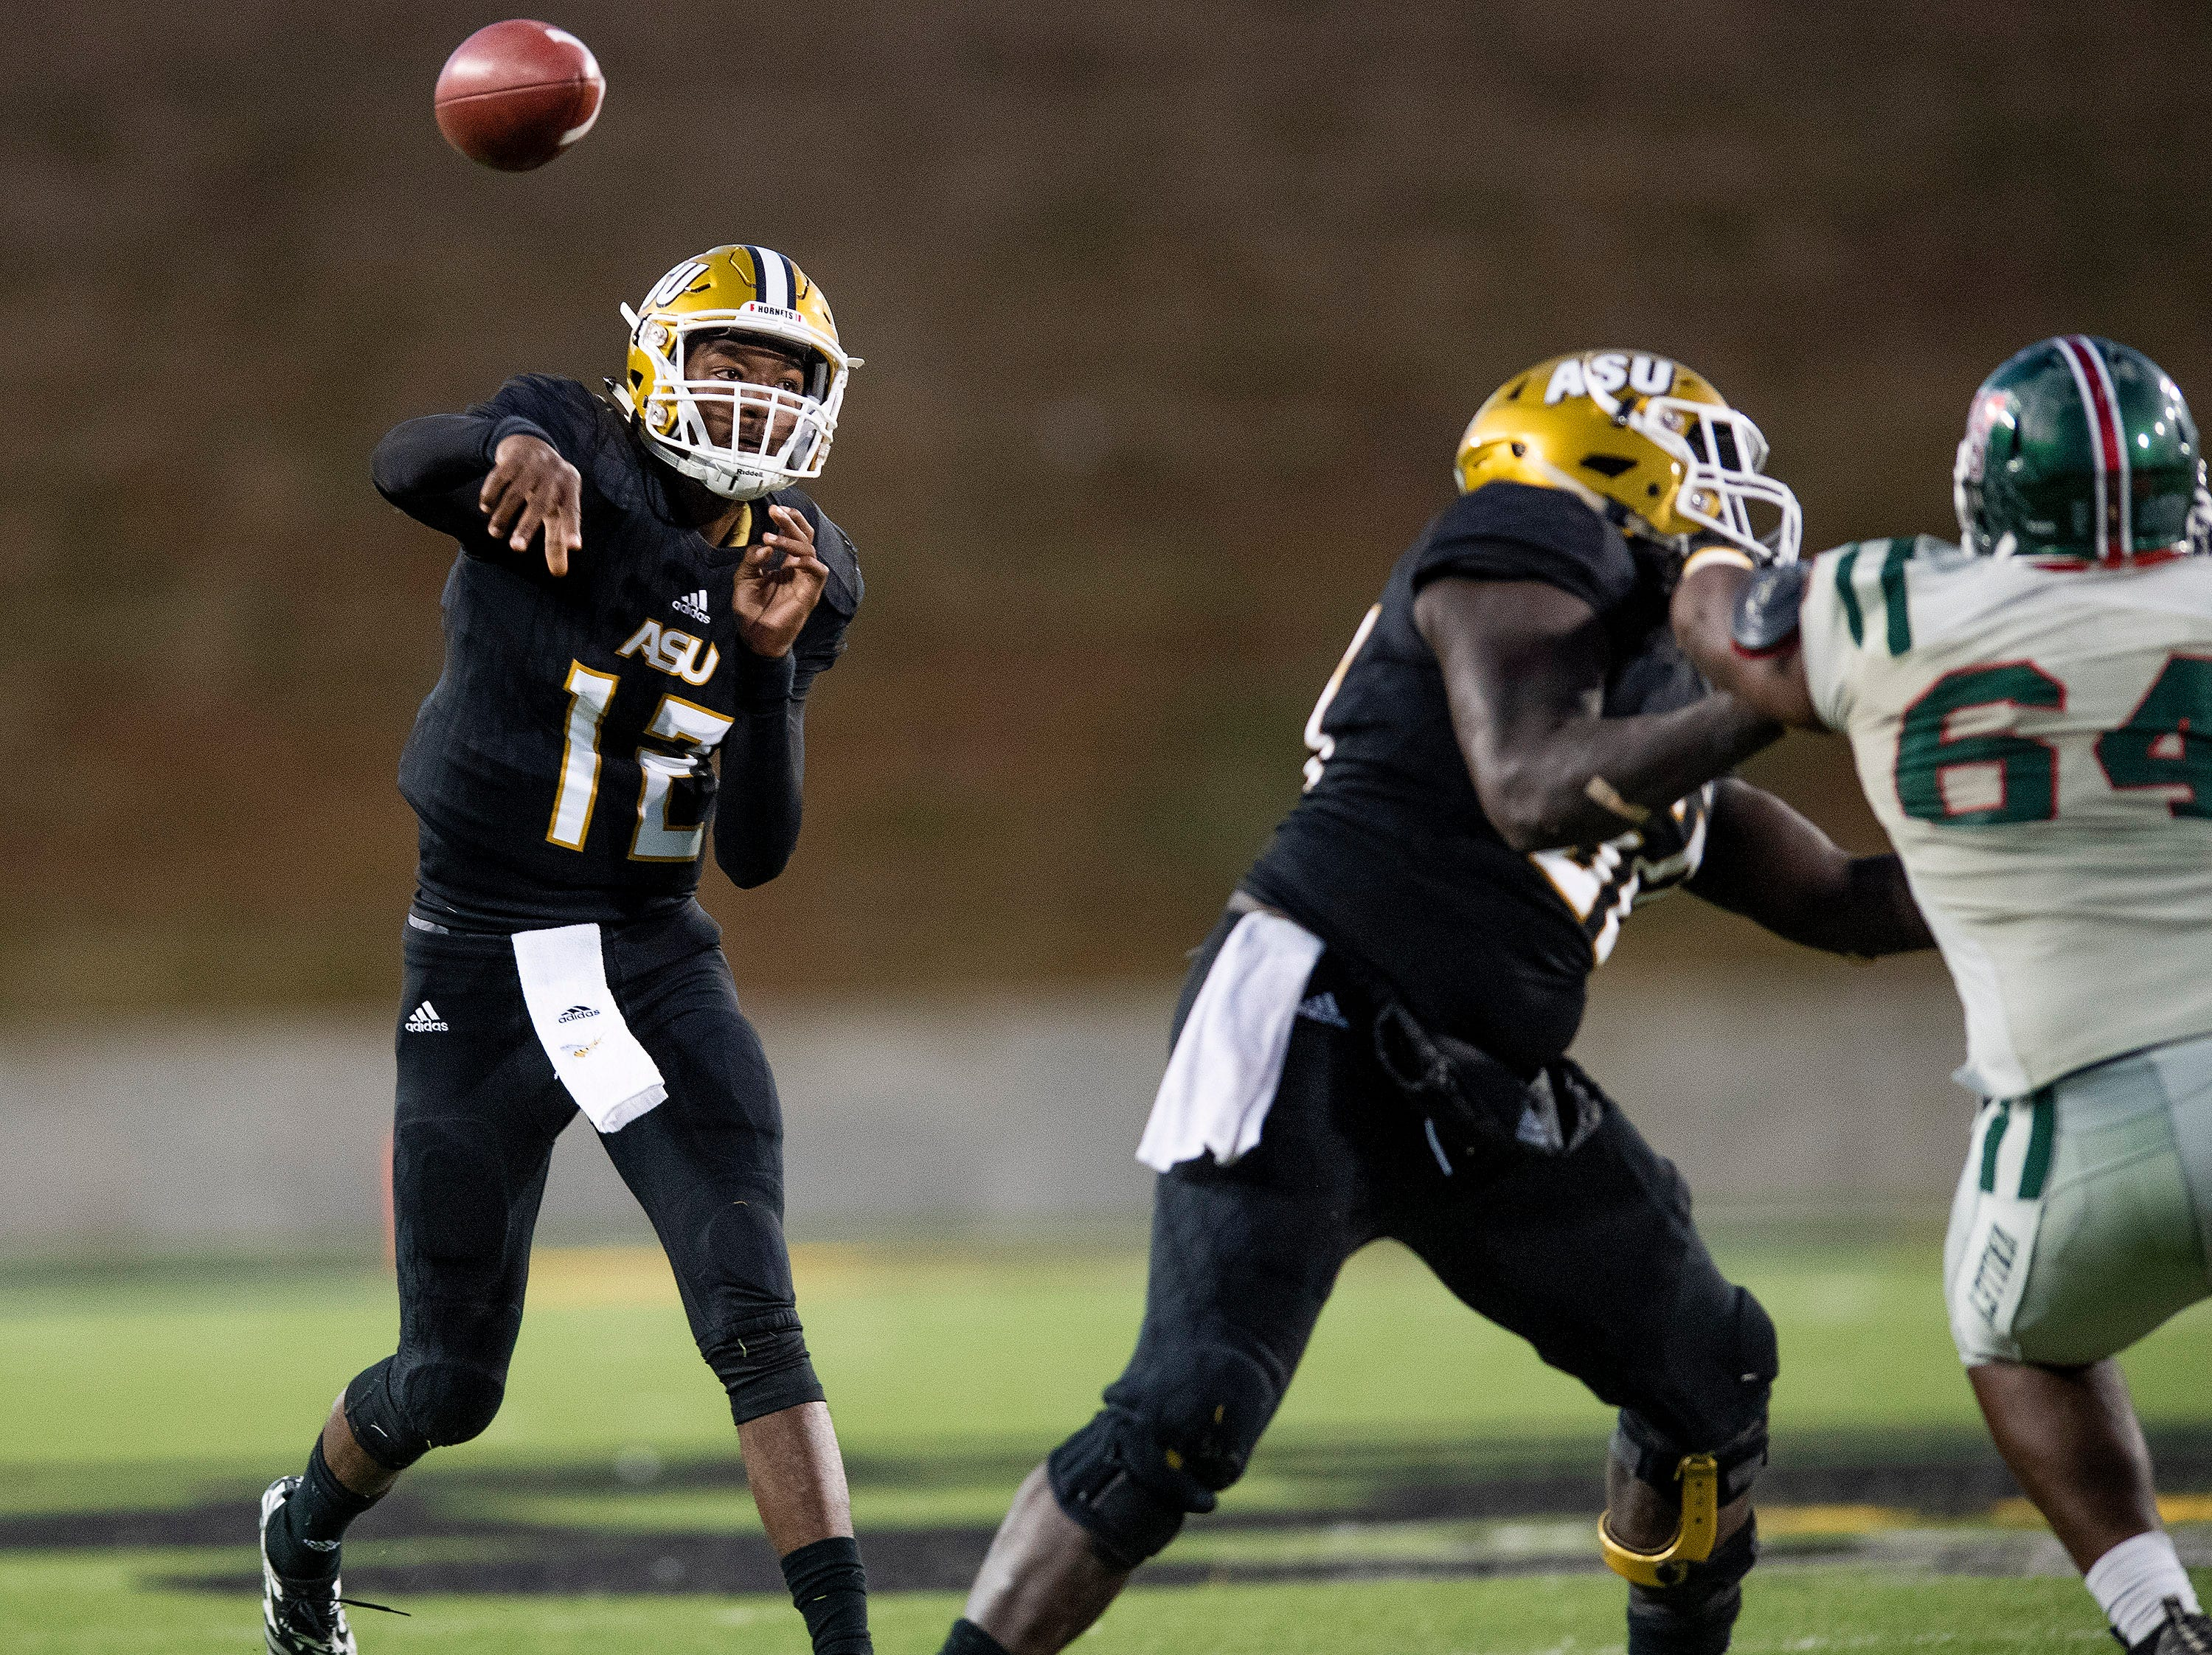 Alabama State University quarterback KHA'Darris Davis (12) passes against Mississippi Valley State the Turkey Day Classic at Hornet Stadium on the ASU campus in Montgomery, Ala., on Thanksgiving Day, Thursday November 22, 2018.